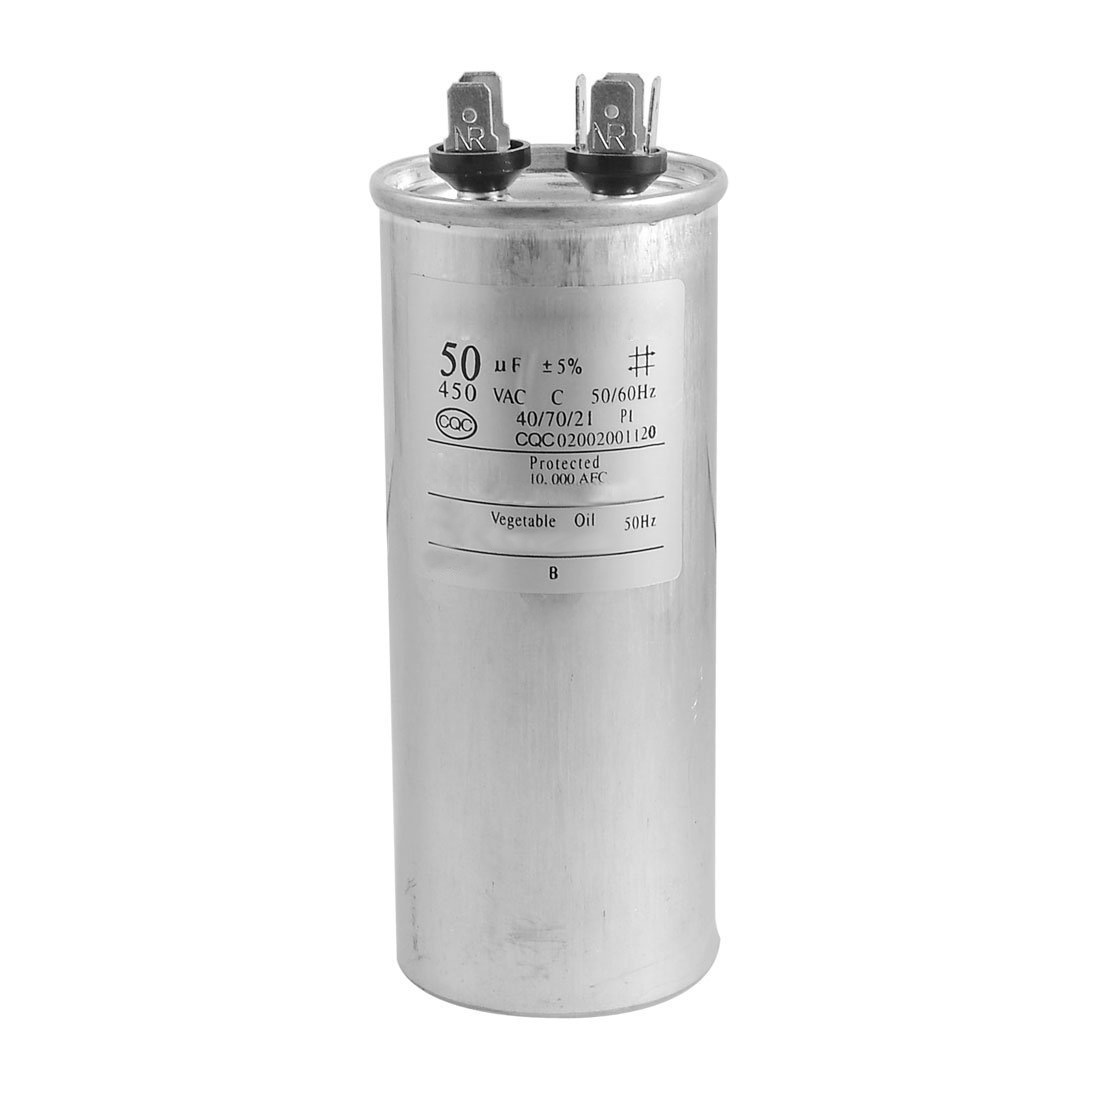 Edfy Cbb65a 1 50uf Ac 450v Motor Capacitor For Air